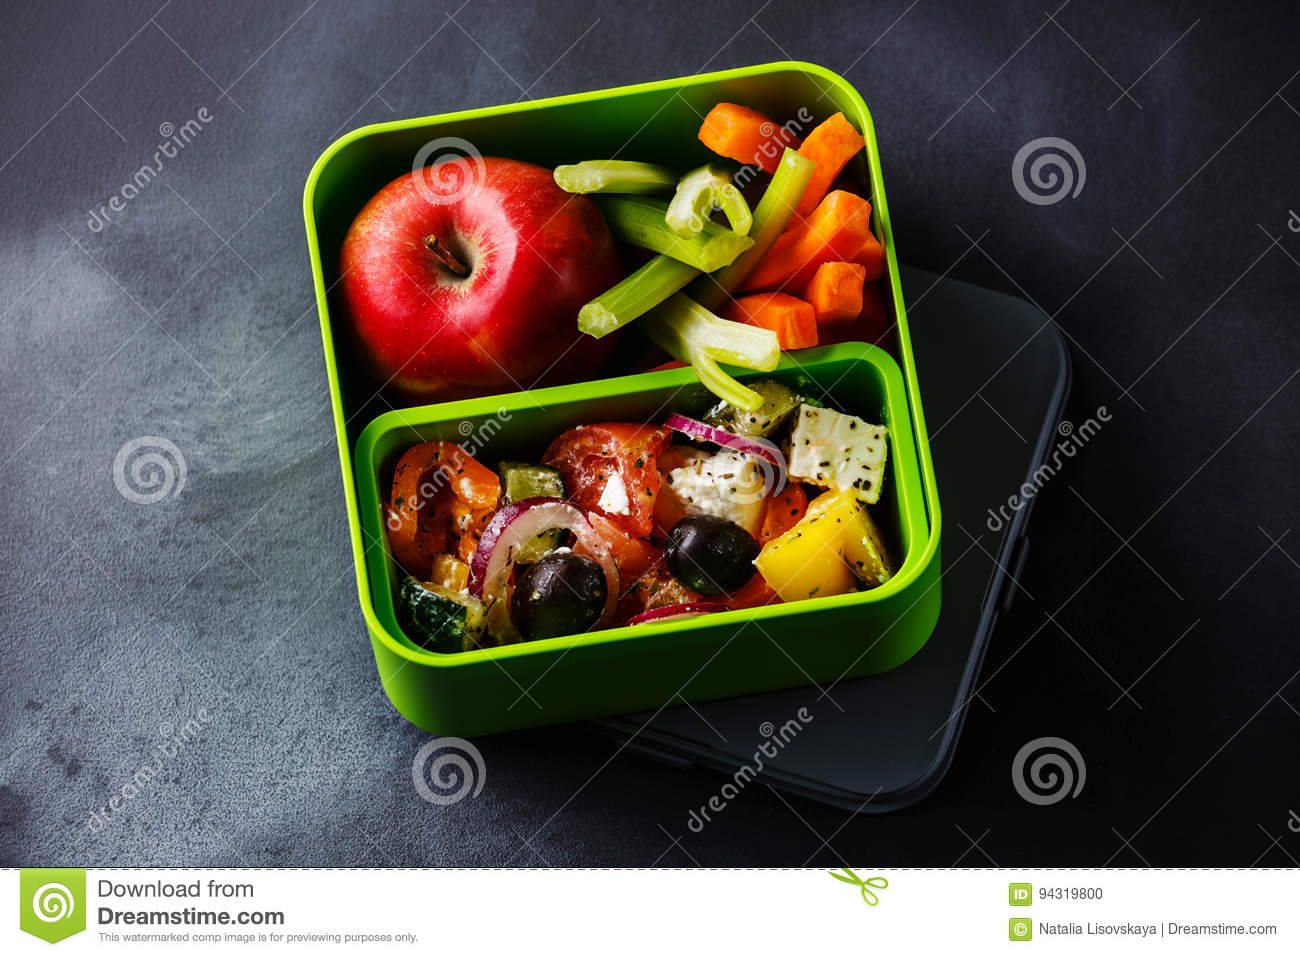 Take out food Greek salad and Apple fruit in Lunch box